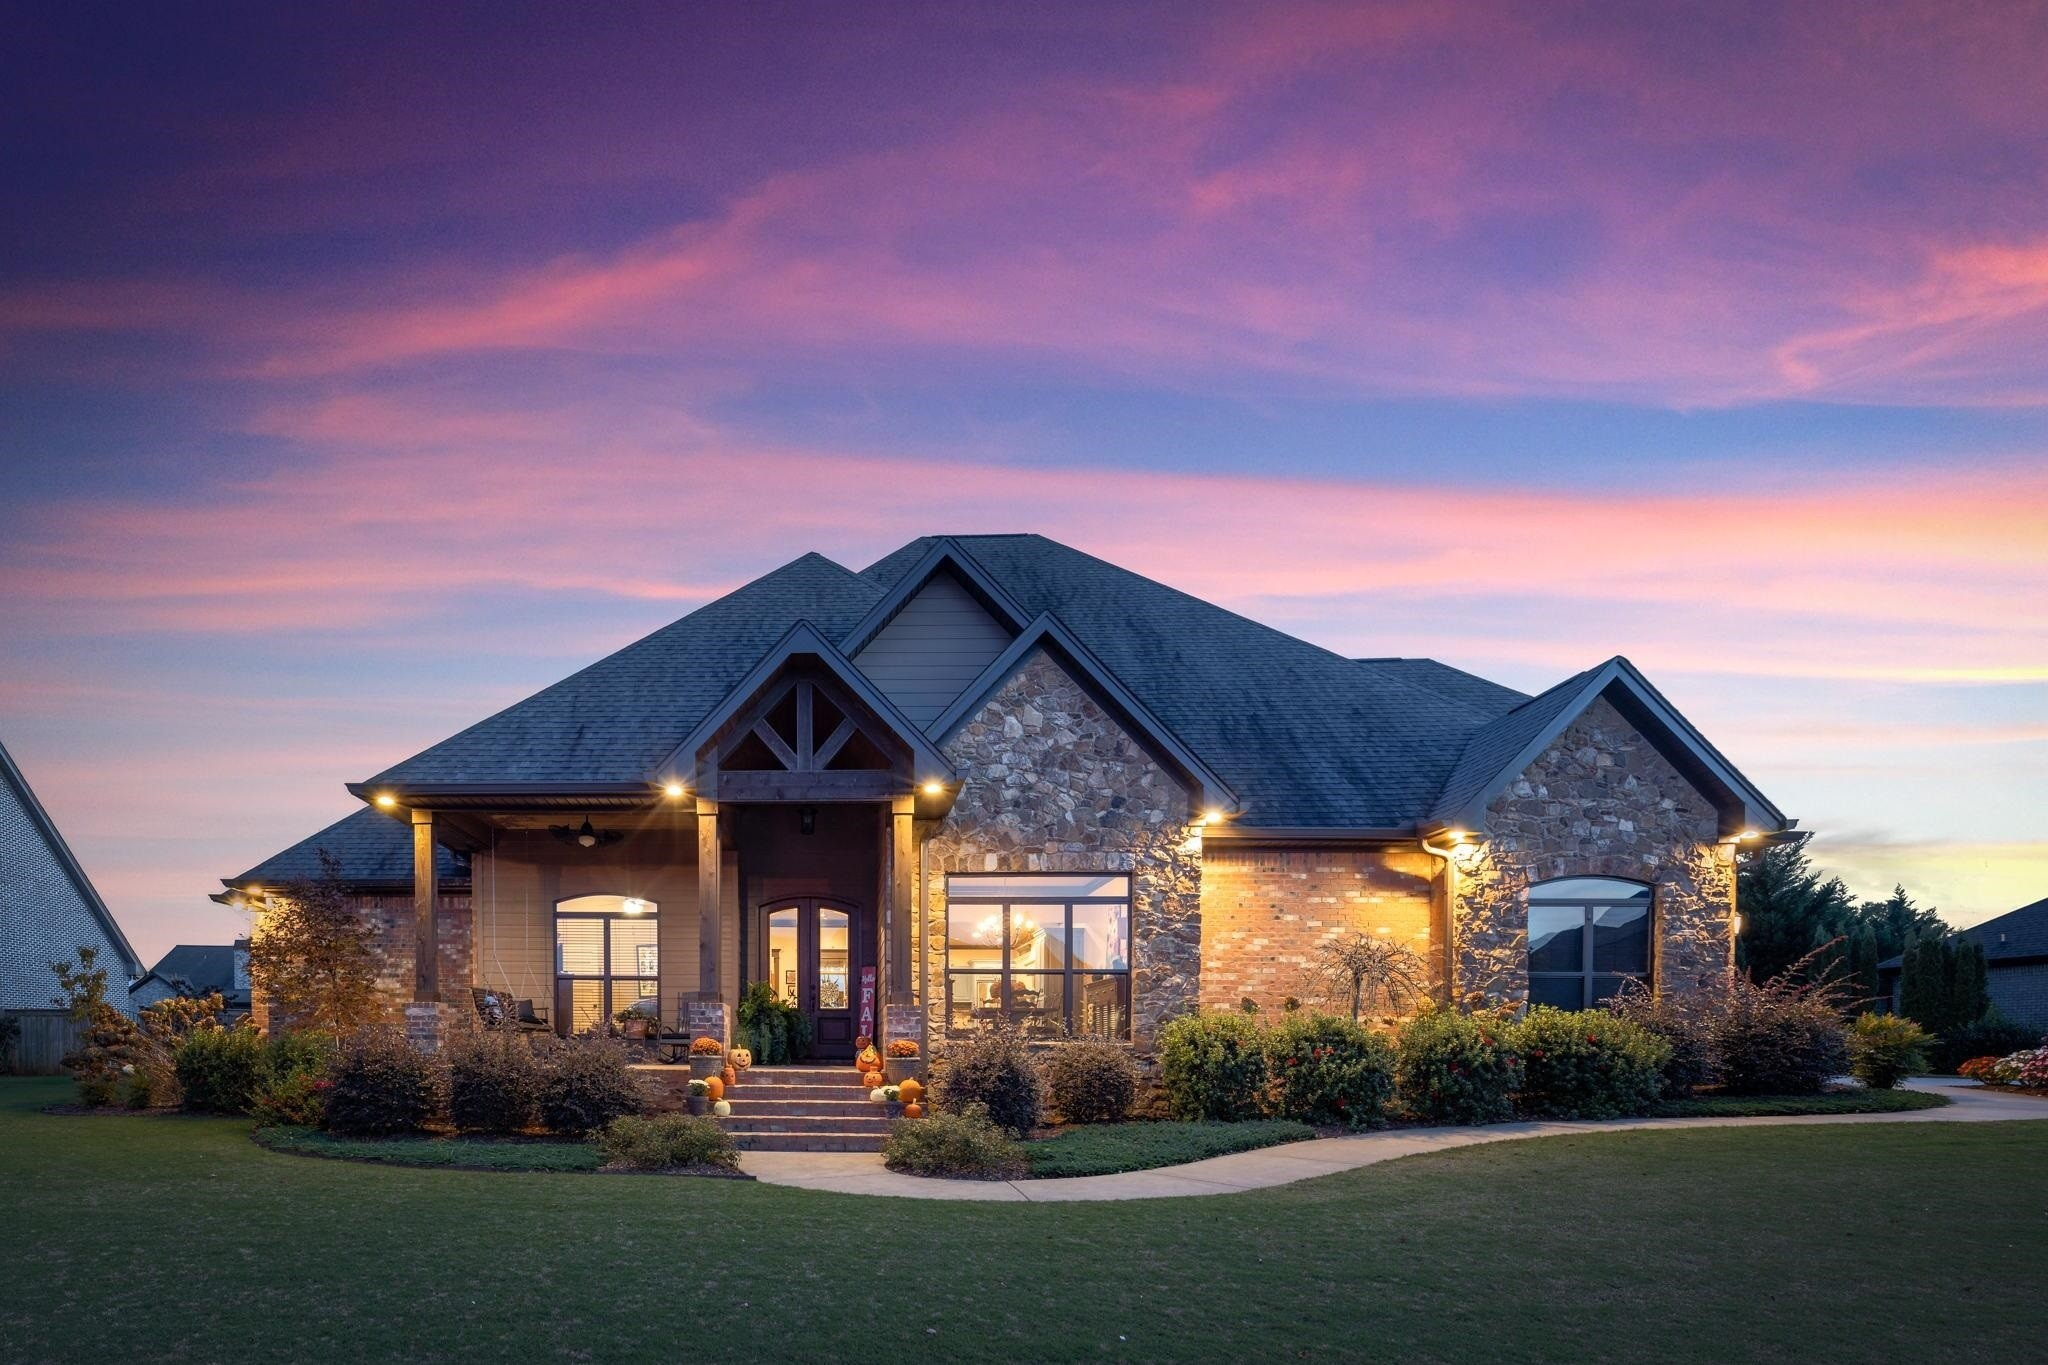 5-Bedroom House In Beacon Pointe